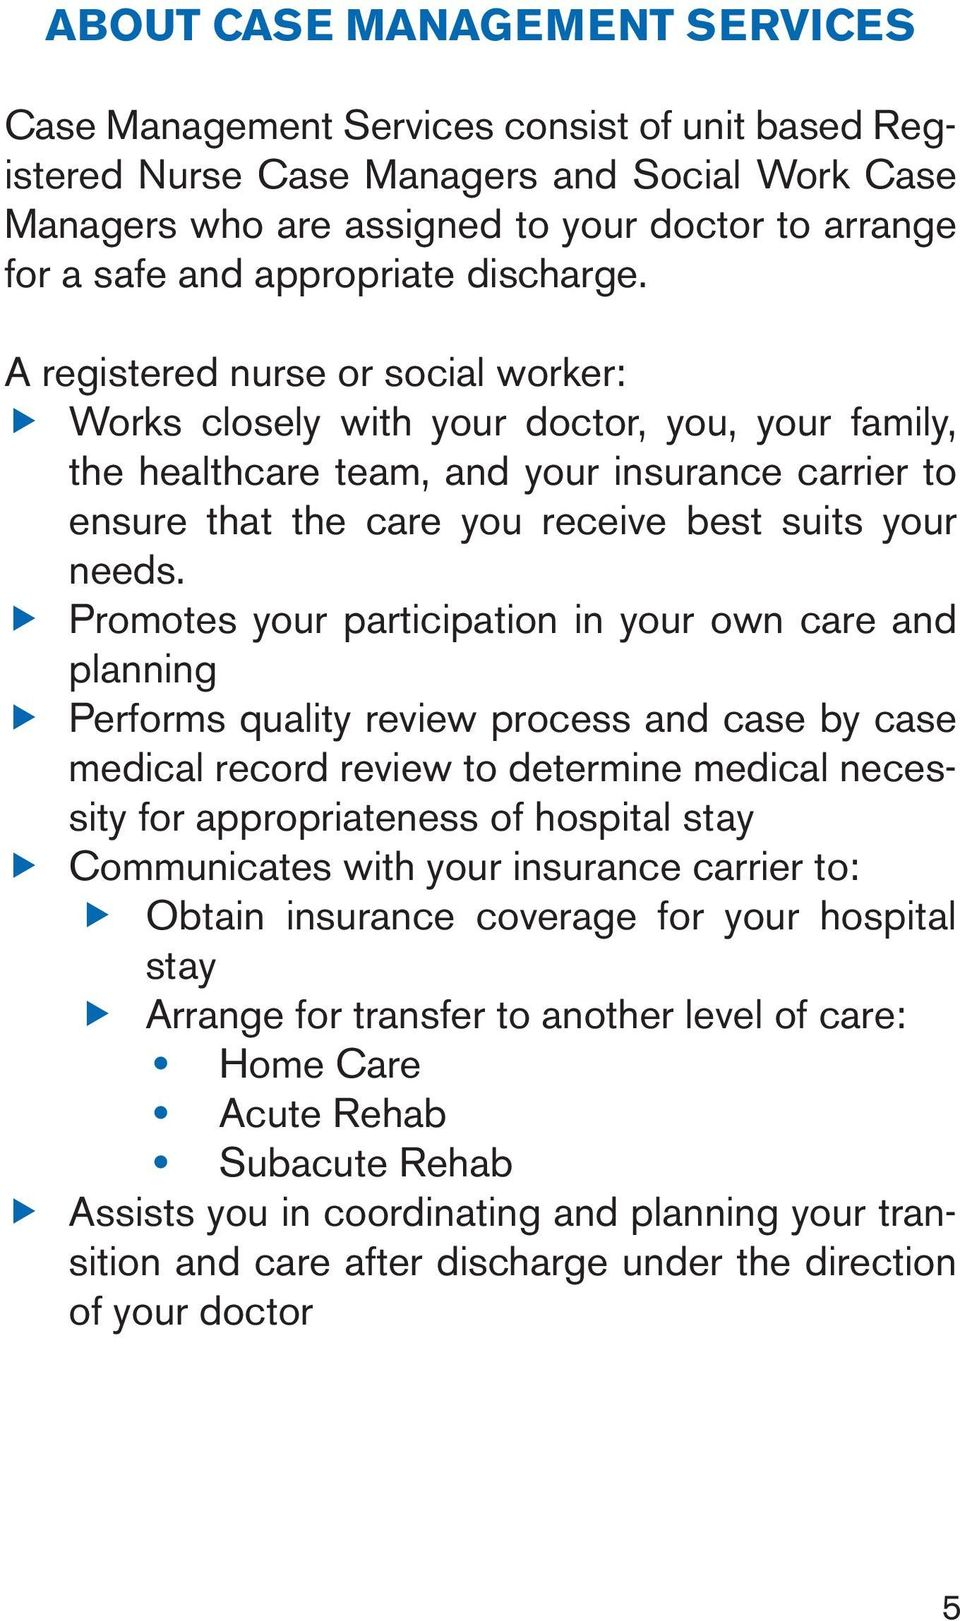 A registered nurse or social worker: Works closely with your doctor, you, your family, the healthcare team, and your insurance carrier to ensure that the care you receive best suits your needs.